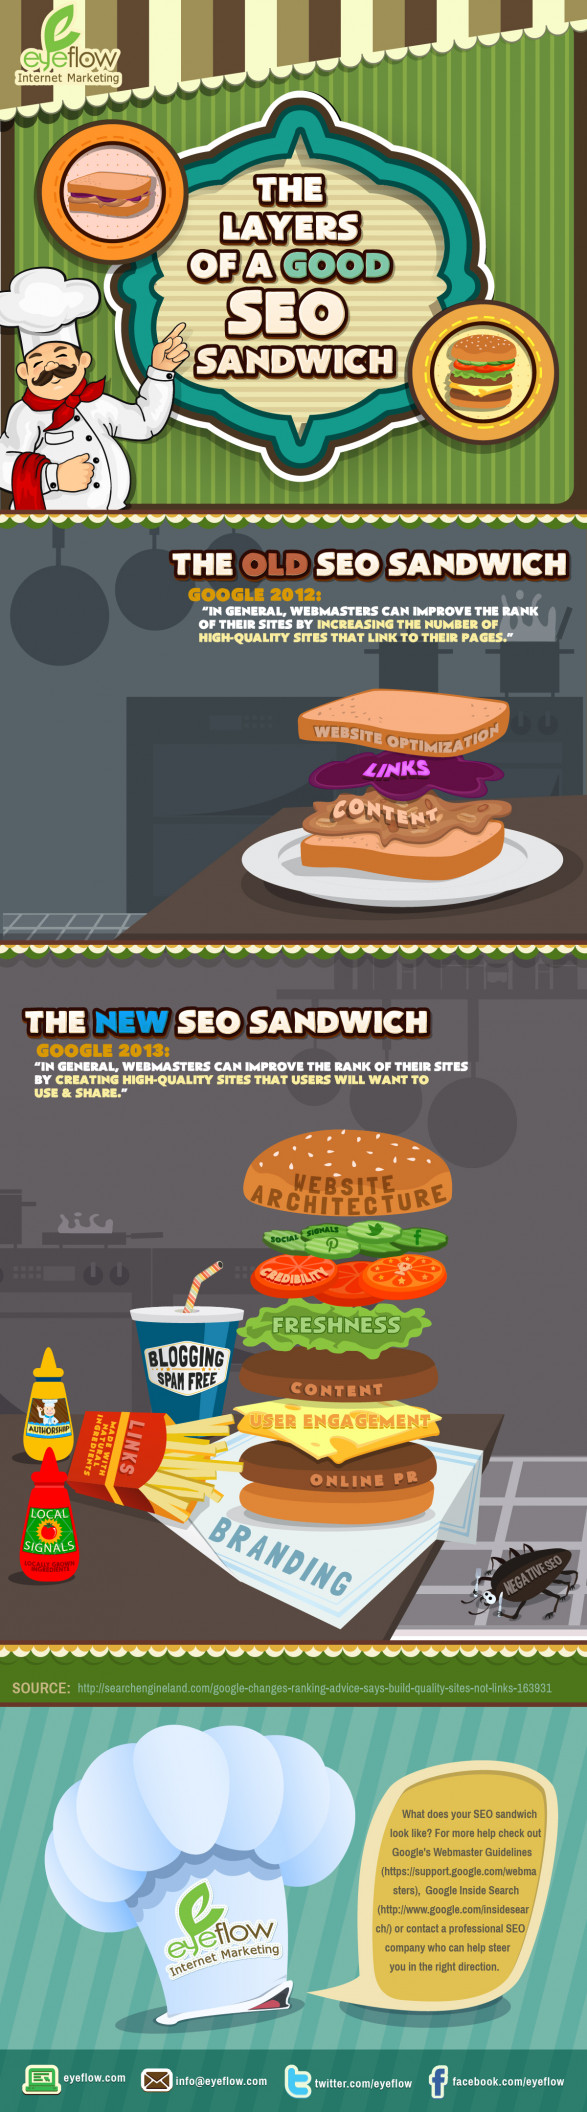 Recipe for SEO Success to Satisfy Your Appetite